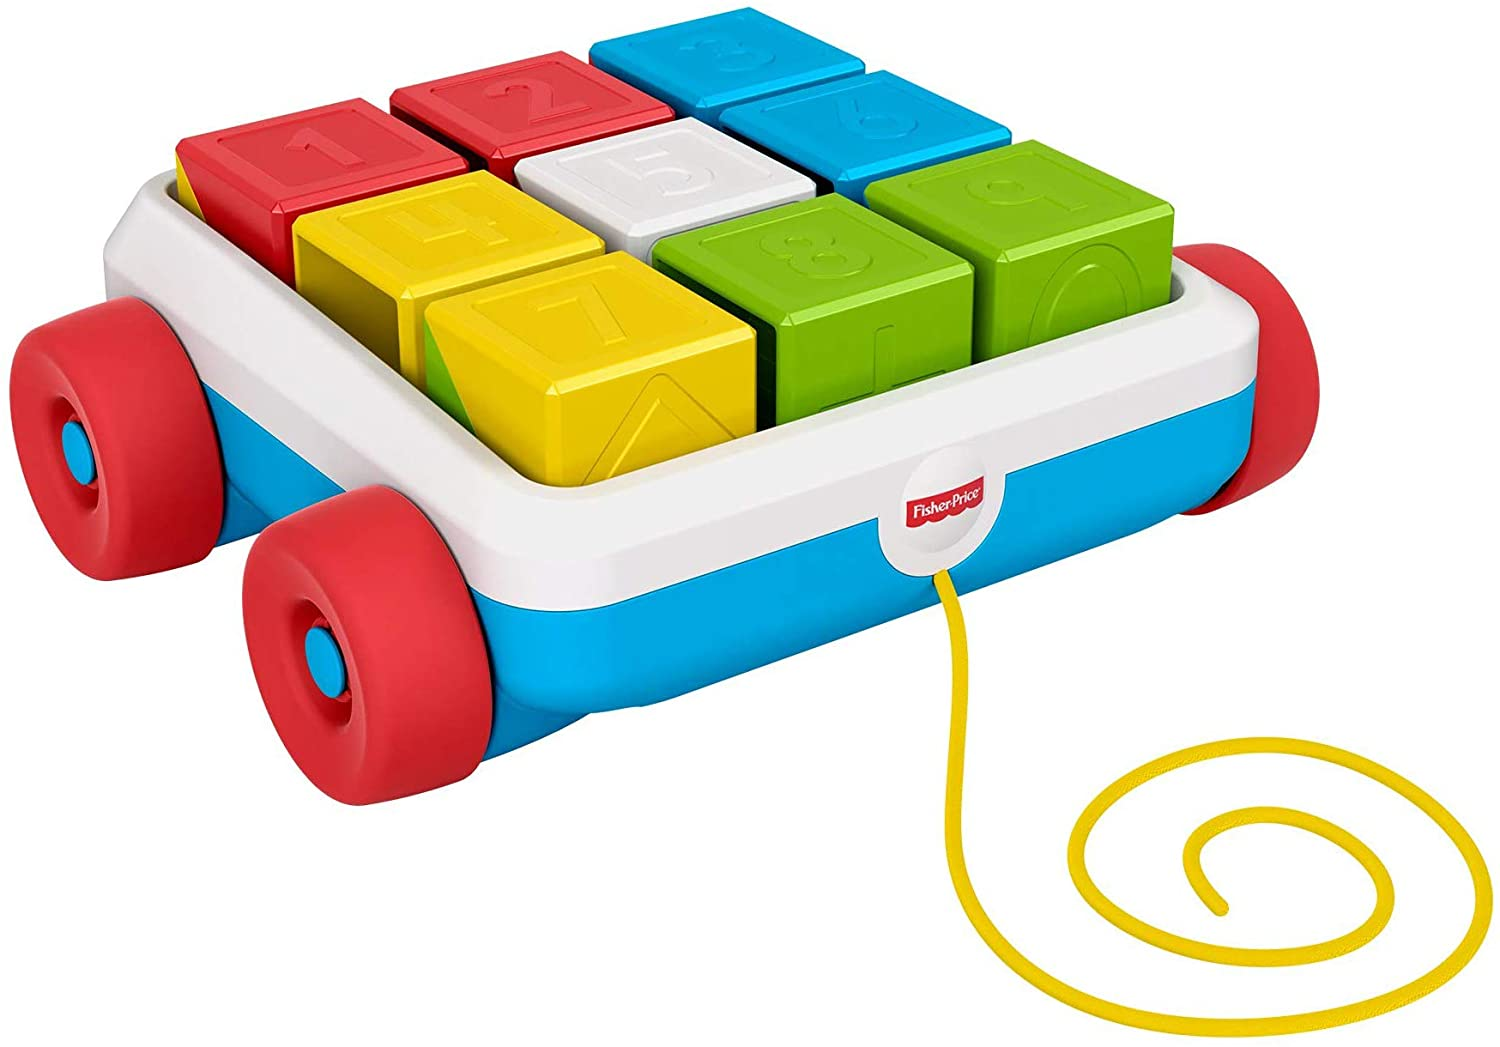 Fisher Price GJW10 Pull-Along Activity Blocks